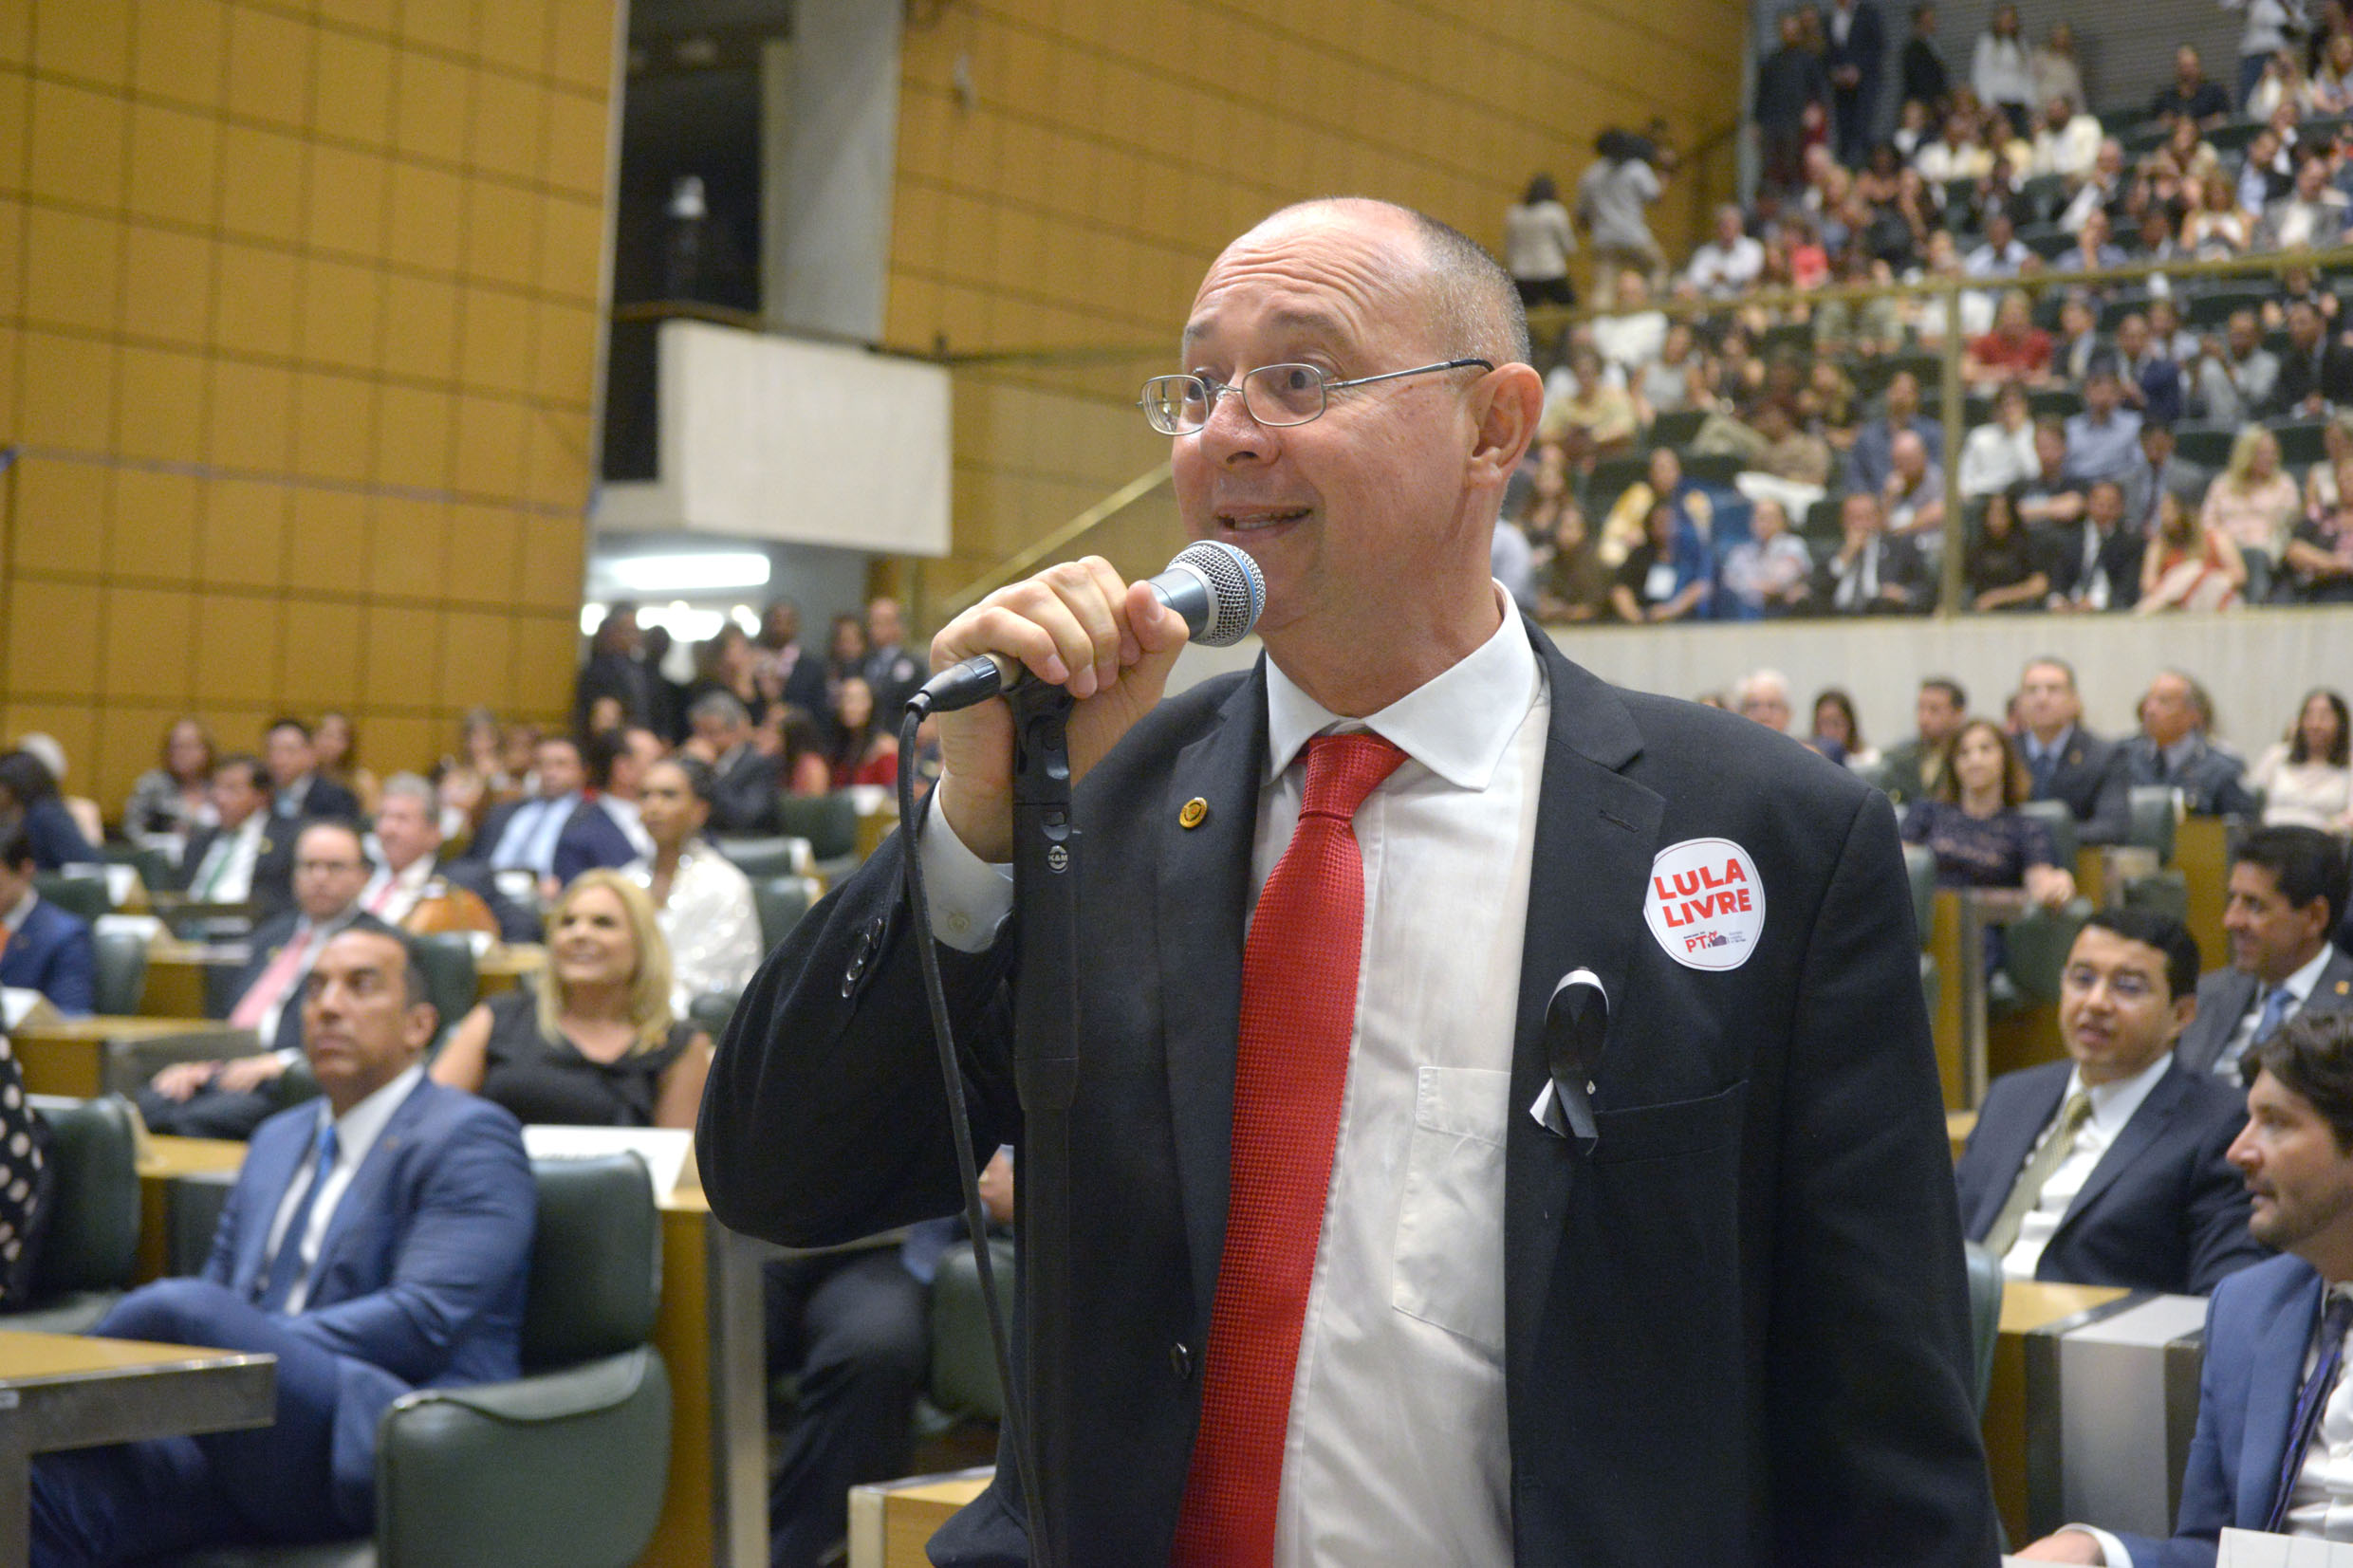 Paulo Fiorilo (PT)<a style='float:right' href='https://www3.al.sp.gov.br/repositorio/noticia/N-03-2019/fg231768.jpg' target=_blank><img src='/_img/material-file-download-white.png' width='14px' alt='Clique para baixar a imagem'></a>